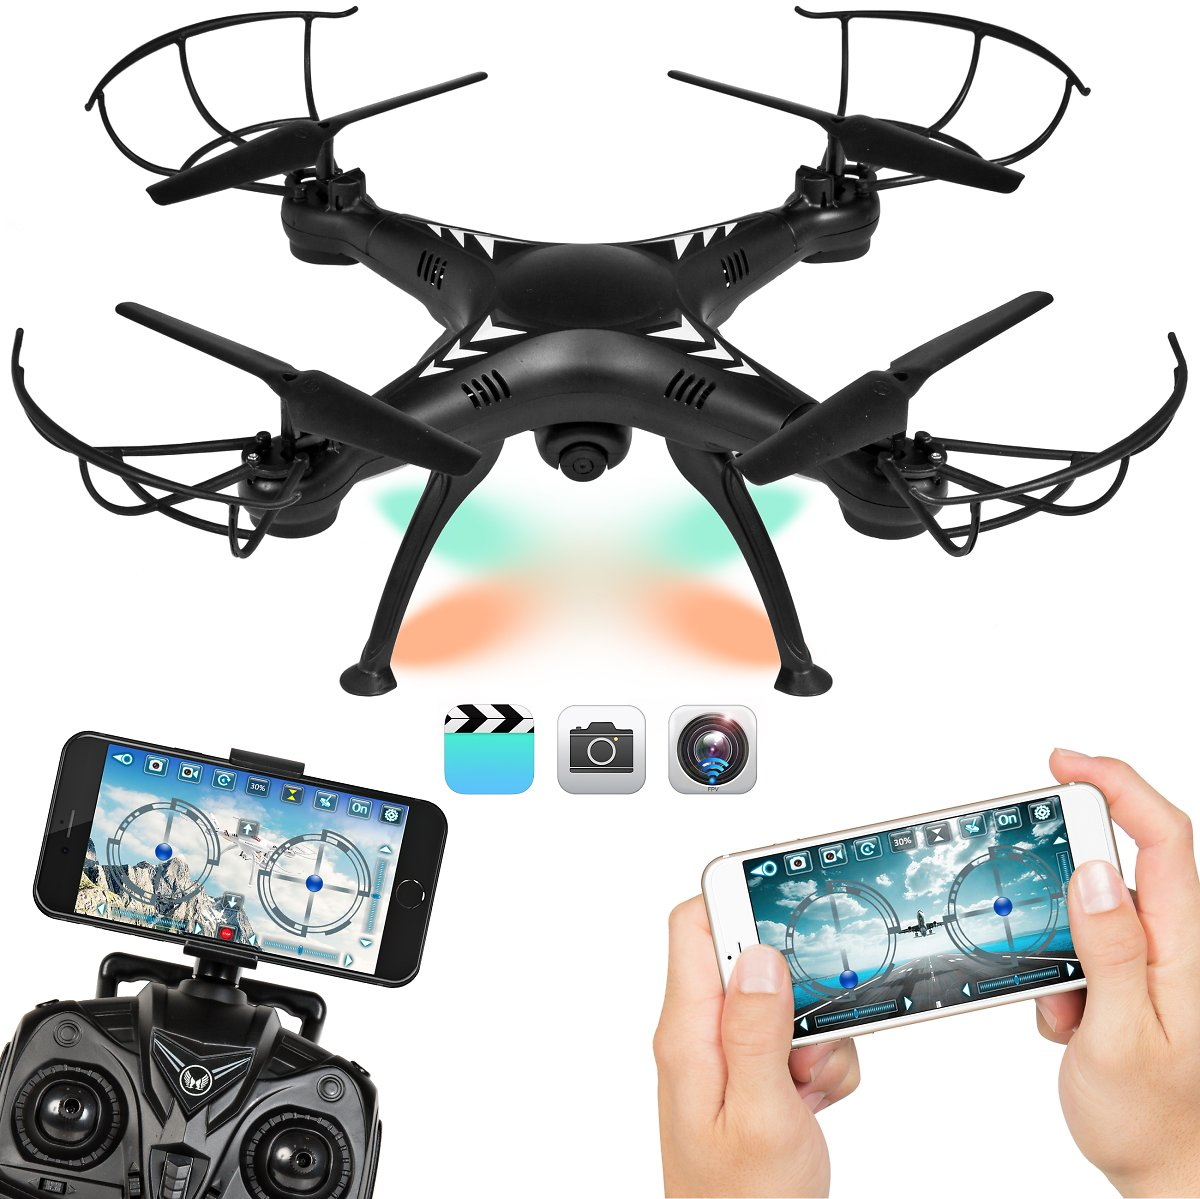 Best Choice Products 2.4G 6-Axis FPV RC Voice Command Quadcopter Drone w/ 720P HD WIFI Live Video Cam, Altitude Hold